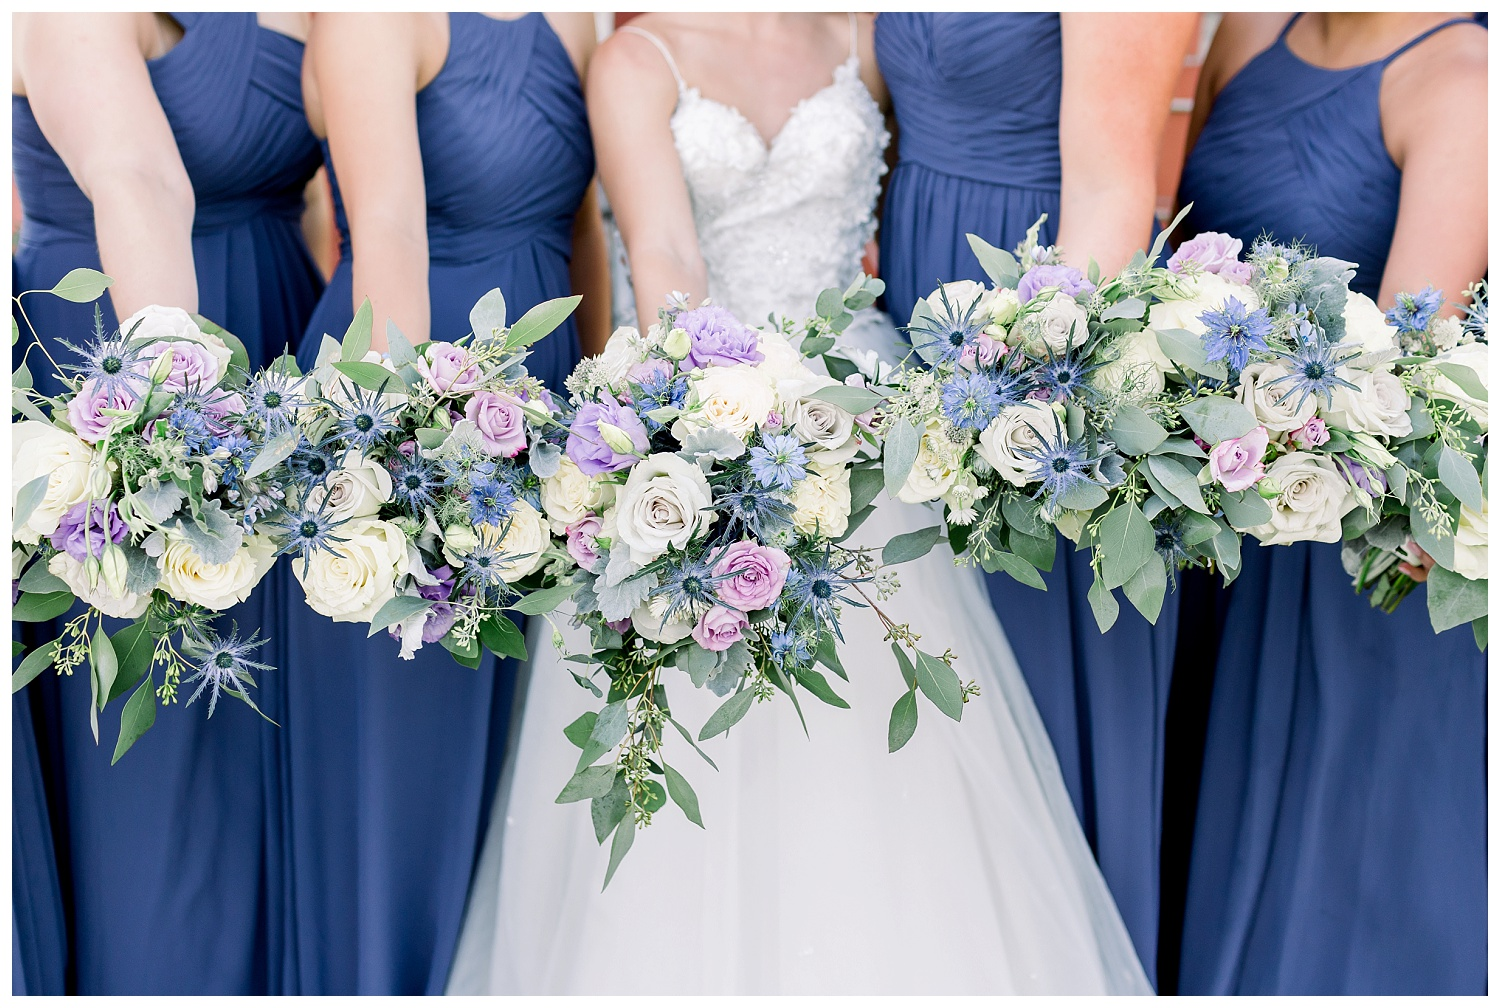 Purple bridesmaid dresses and bouquets